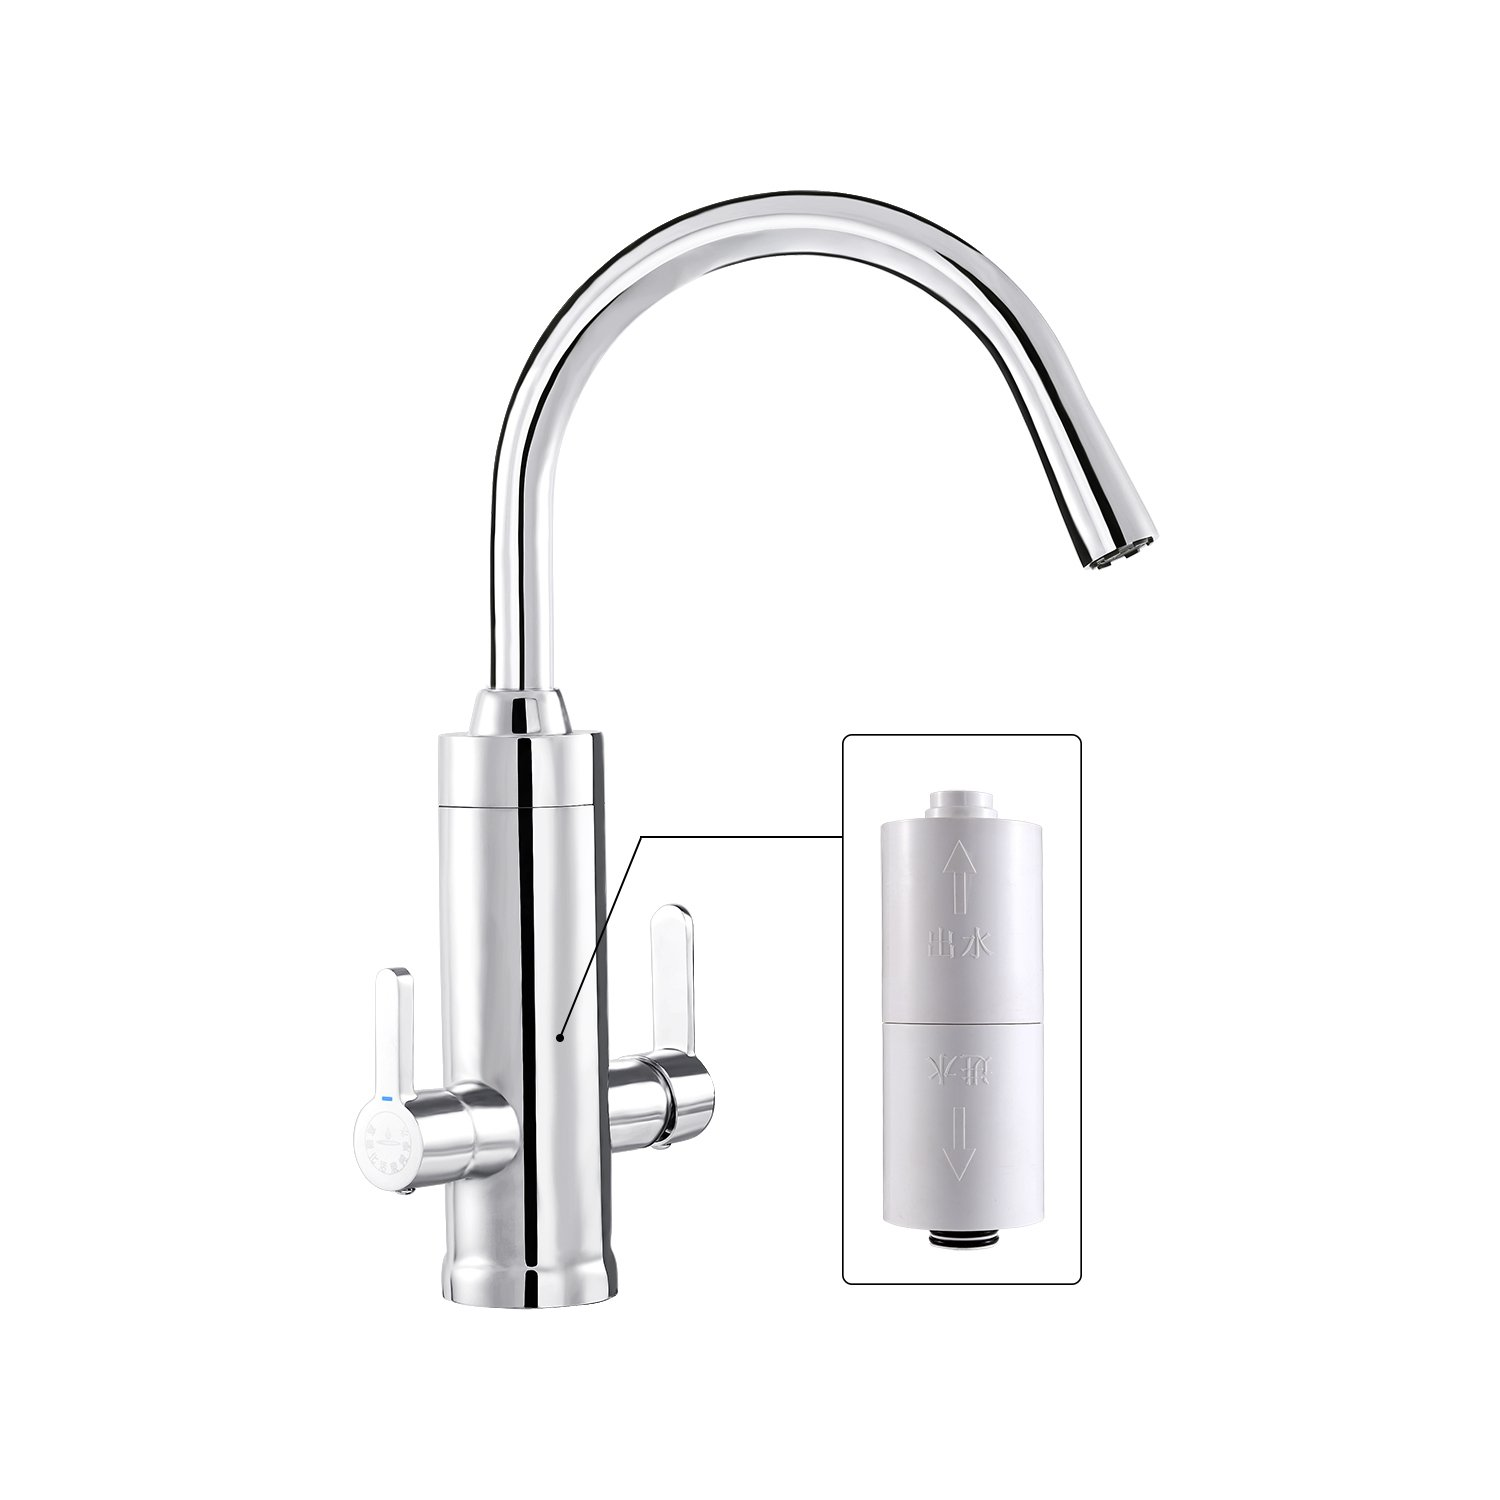 Wagen Built-in Filter Kitchen Faucet, 8 Stage 0.05micron Filter Tap ...